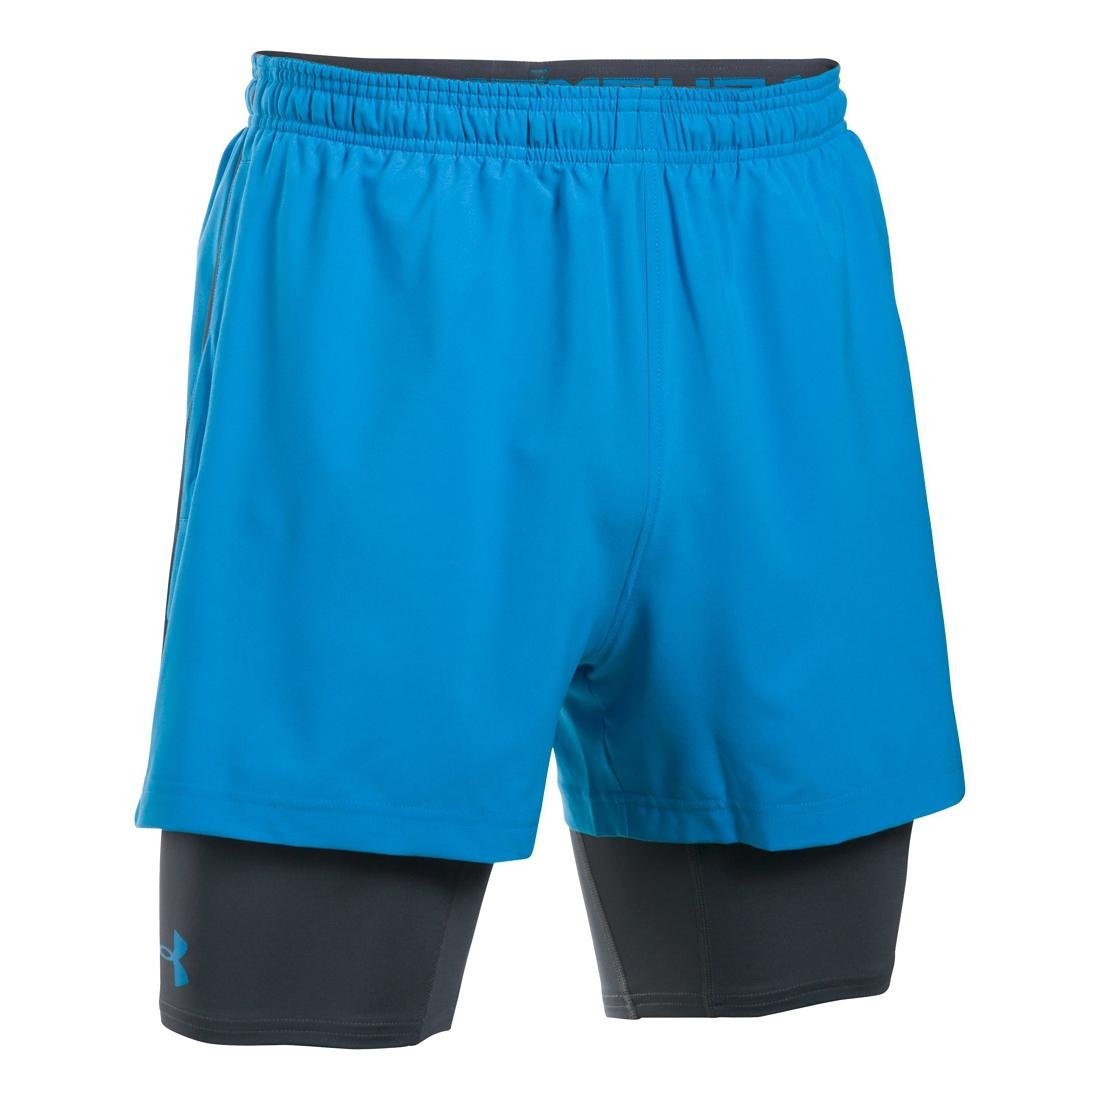 Under Armour Mens Mirage 2-in-1 Training Shorts